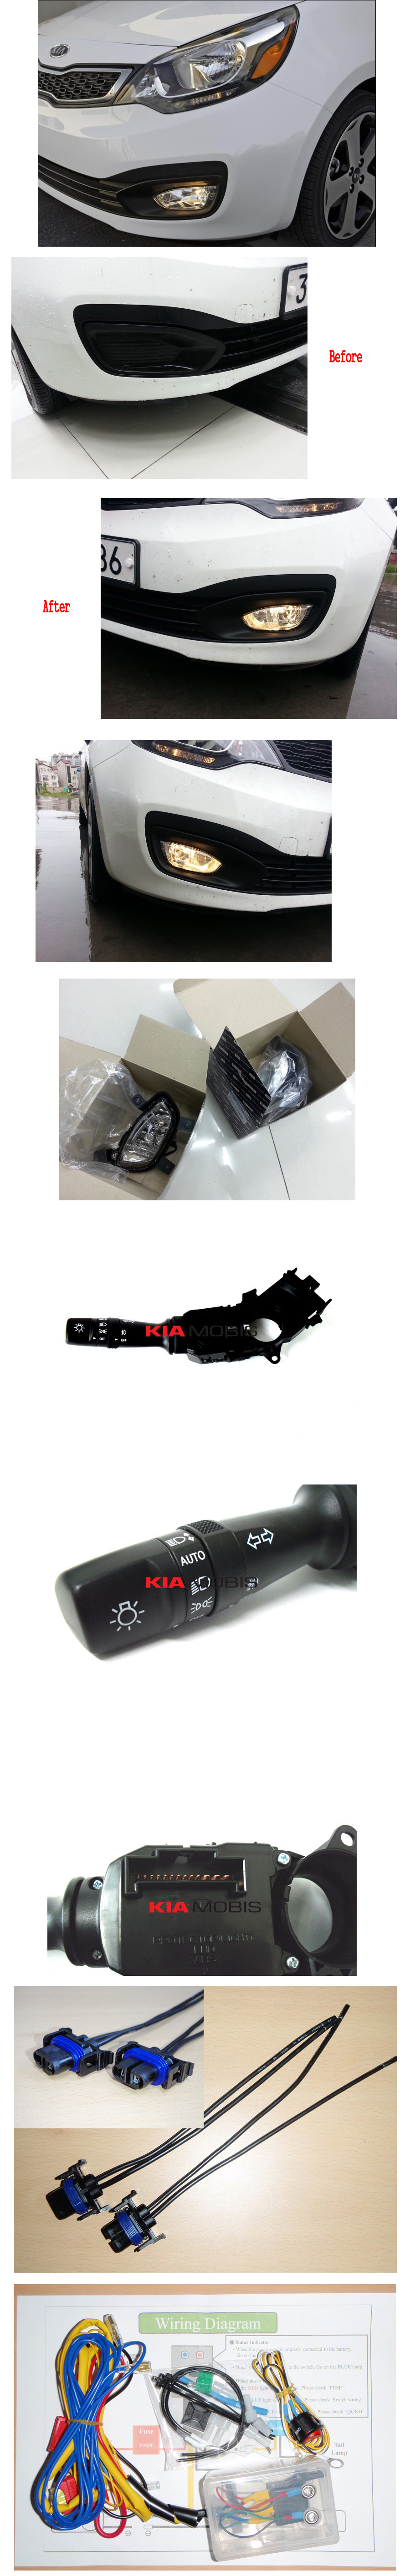 Fog Lamp Light Harness Mf Switch Complete Kit For 2012